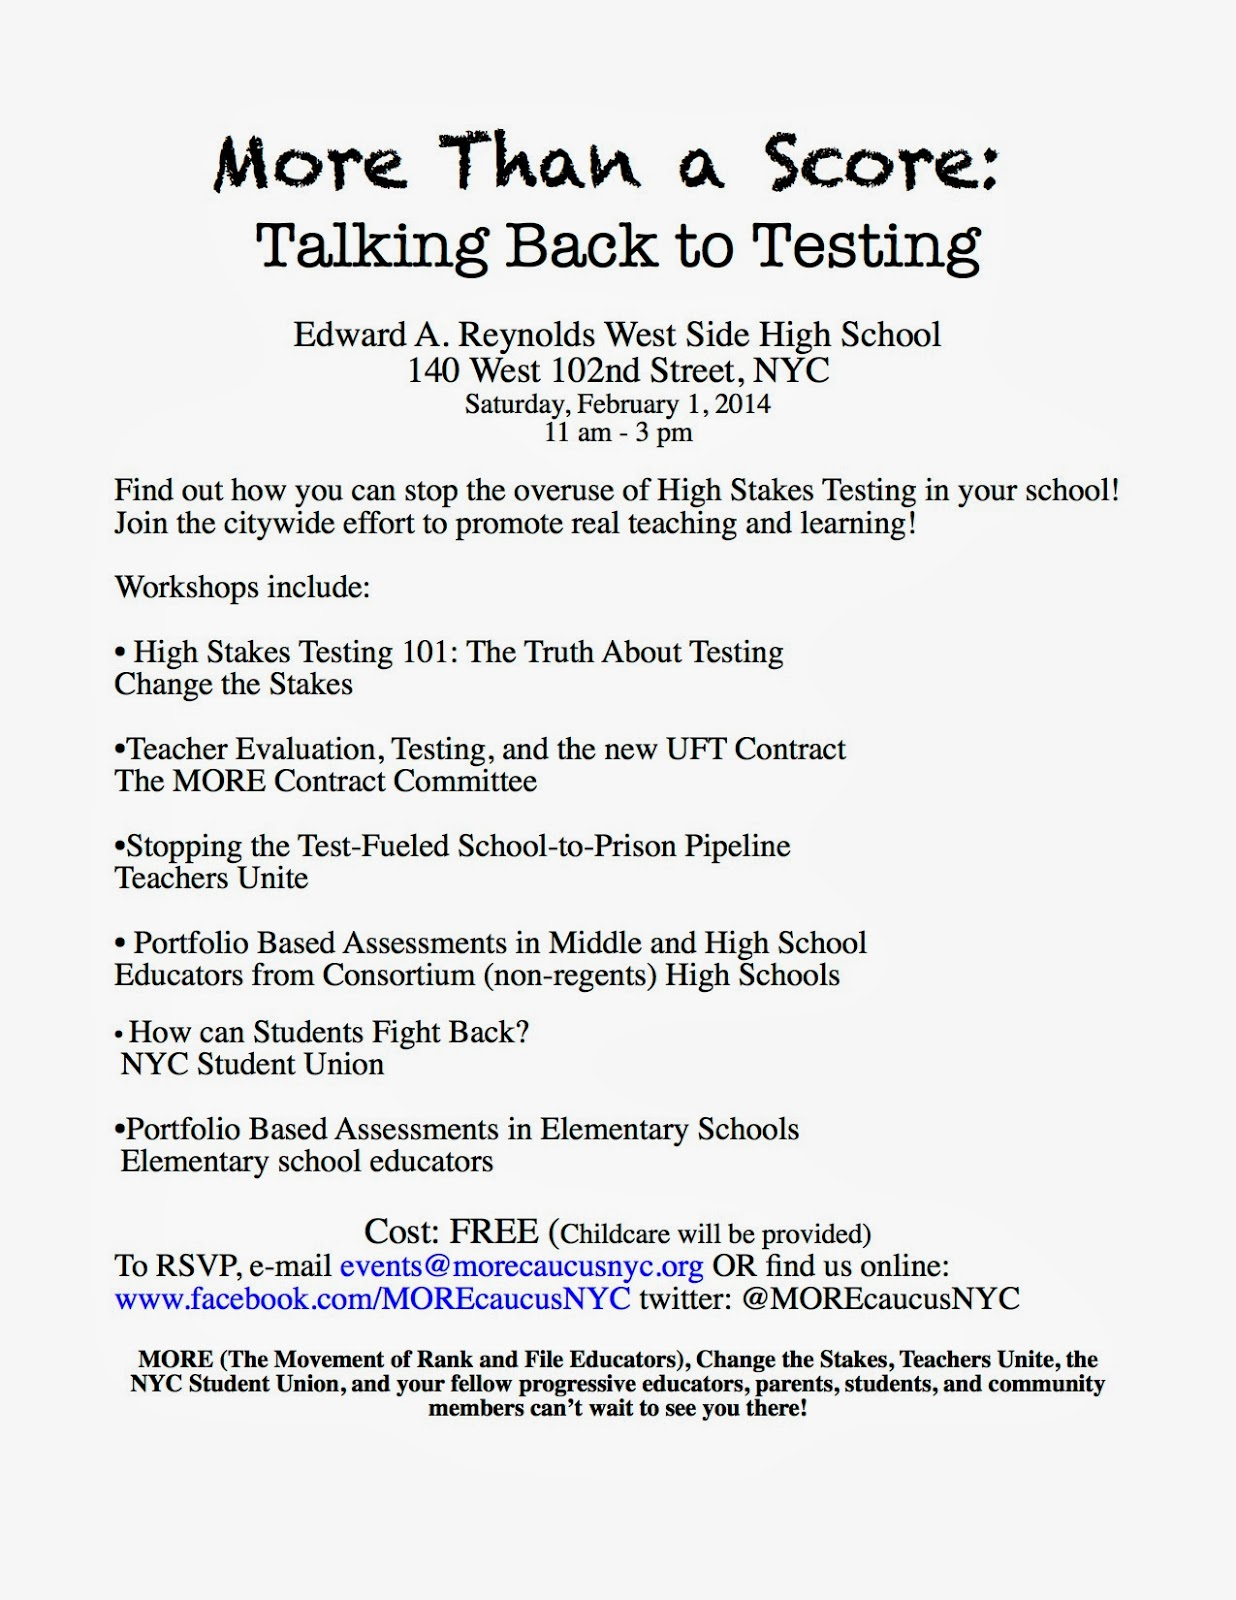 ed notes online more than a score a week away and how one principal is dealing with parent community on testing